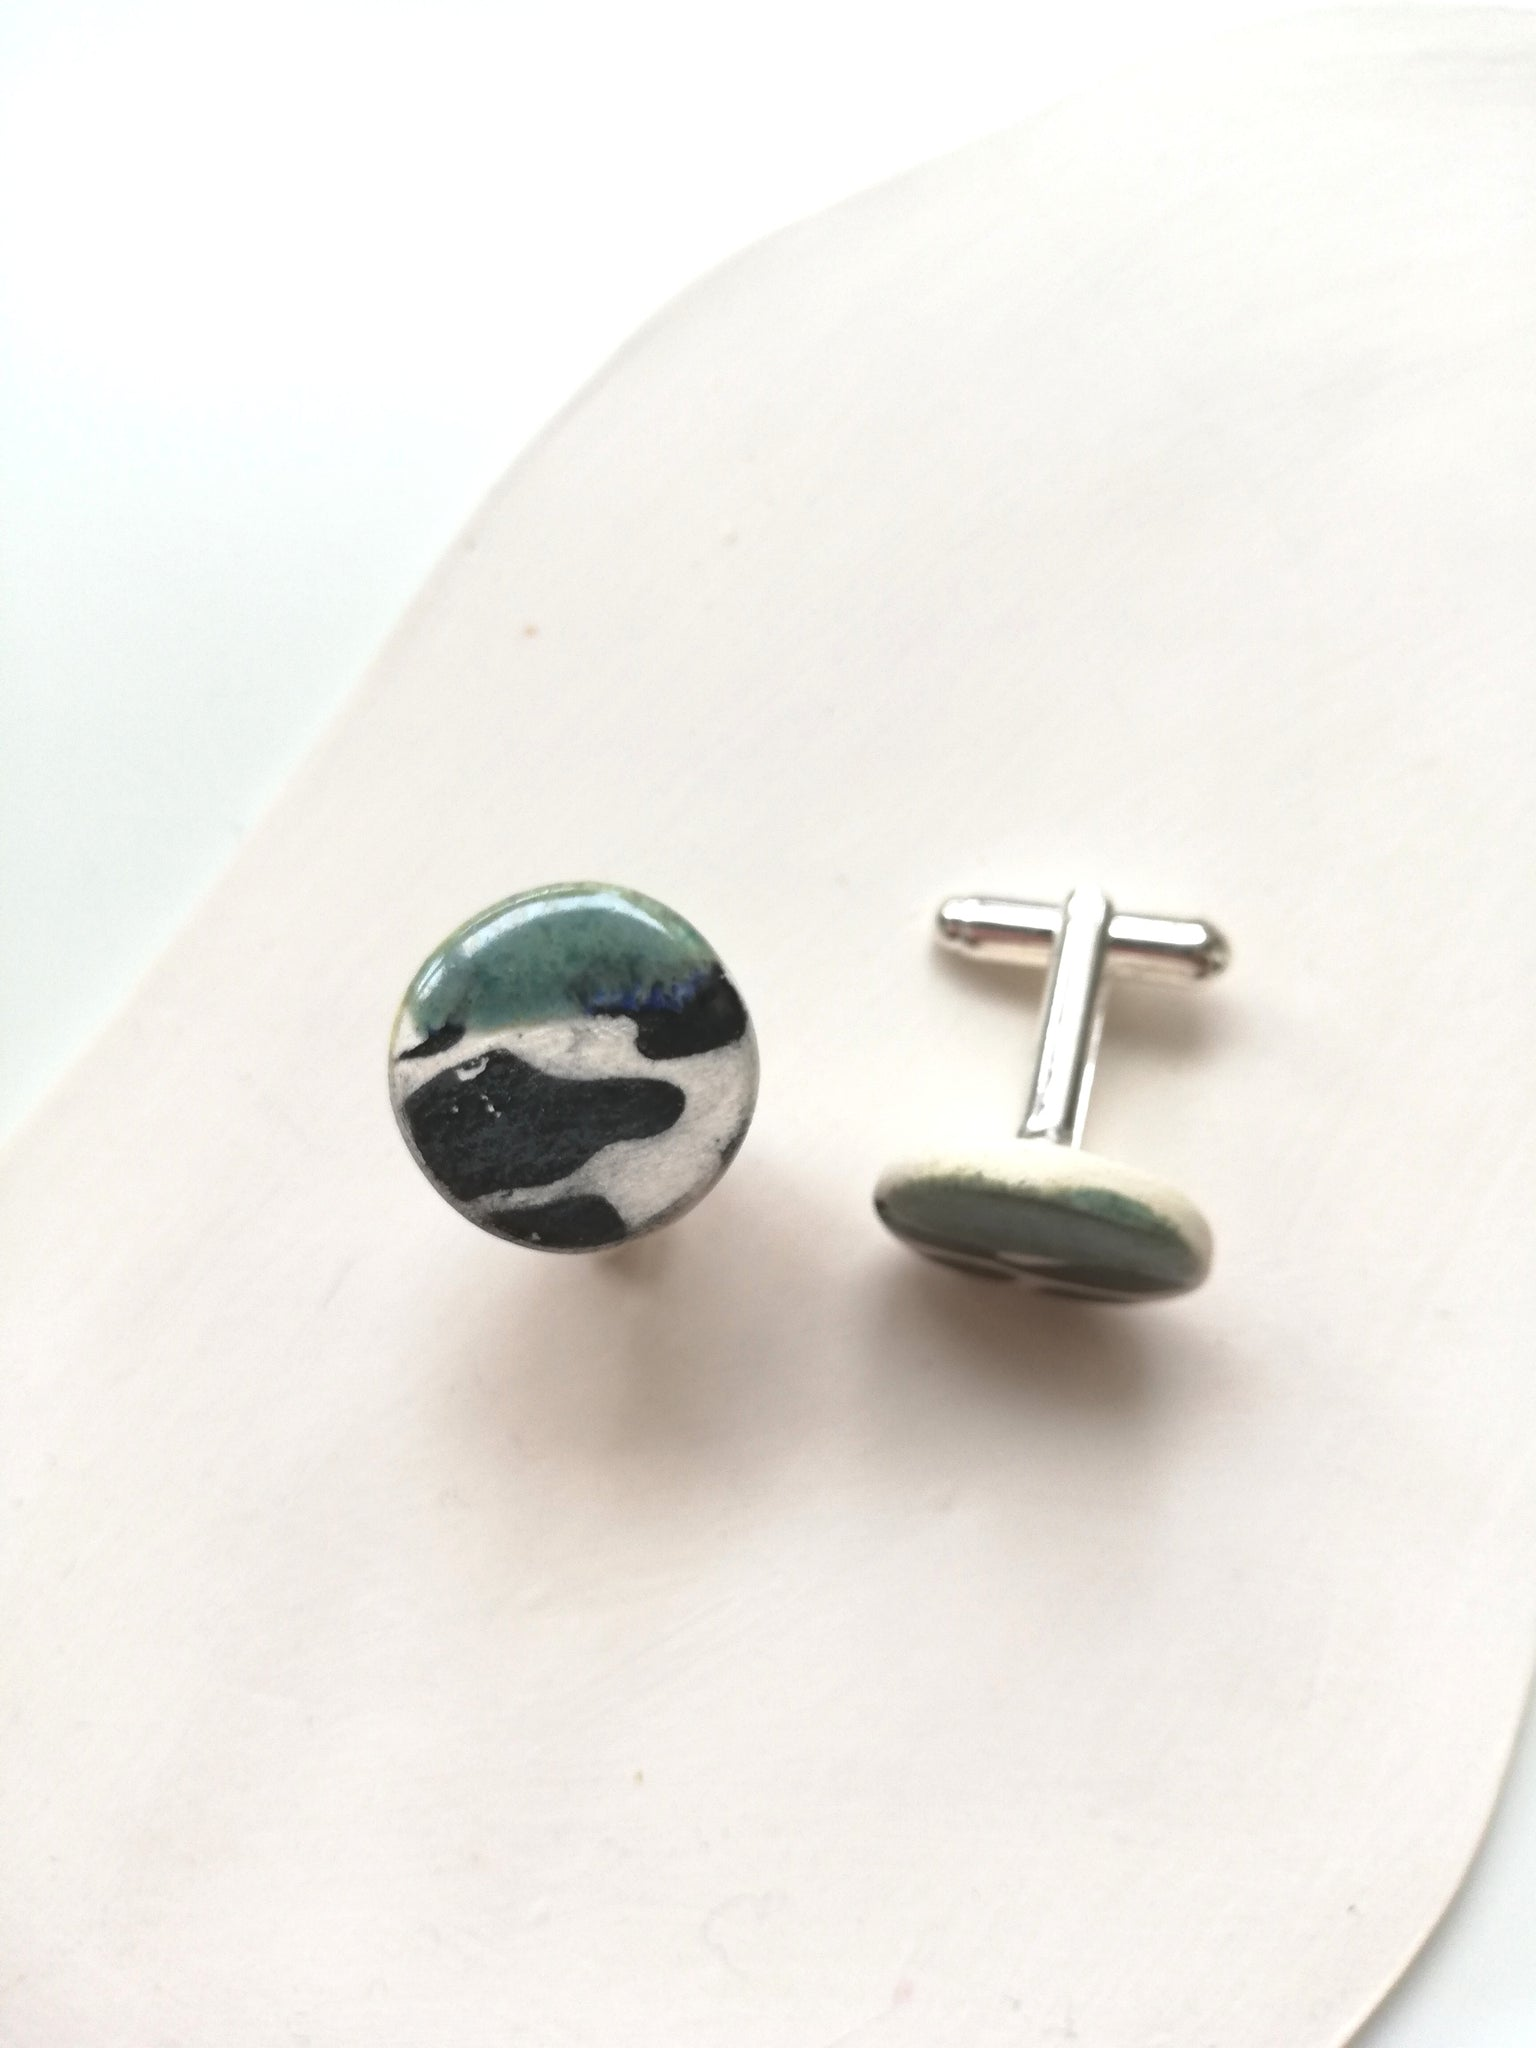 Round Ceramic Cufflinks - Black Animal Print & Green